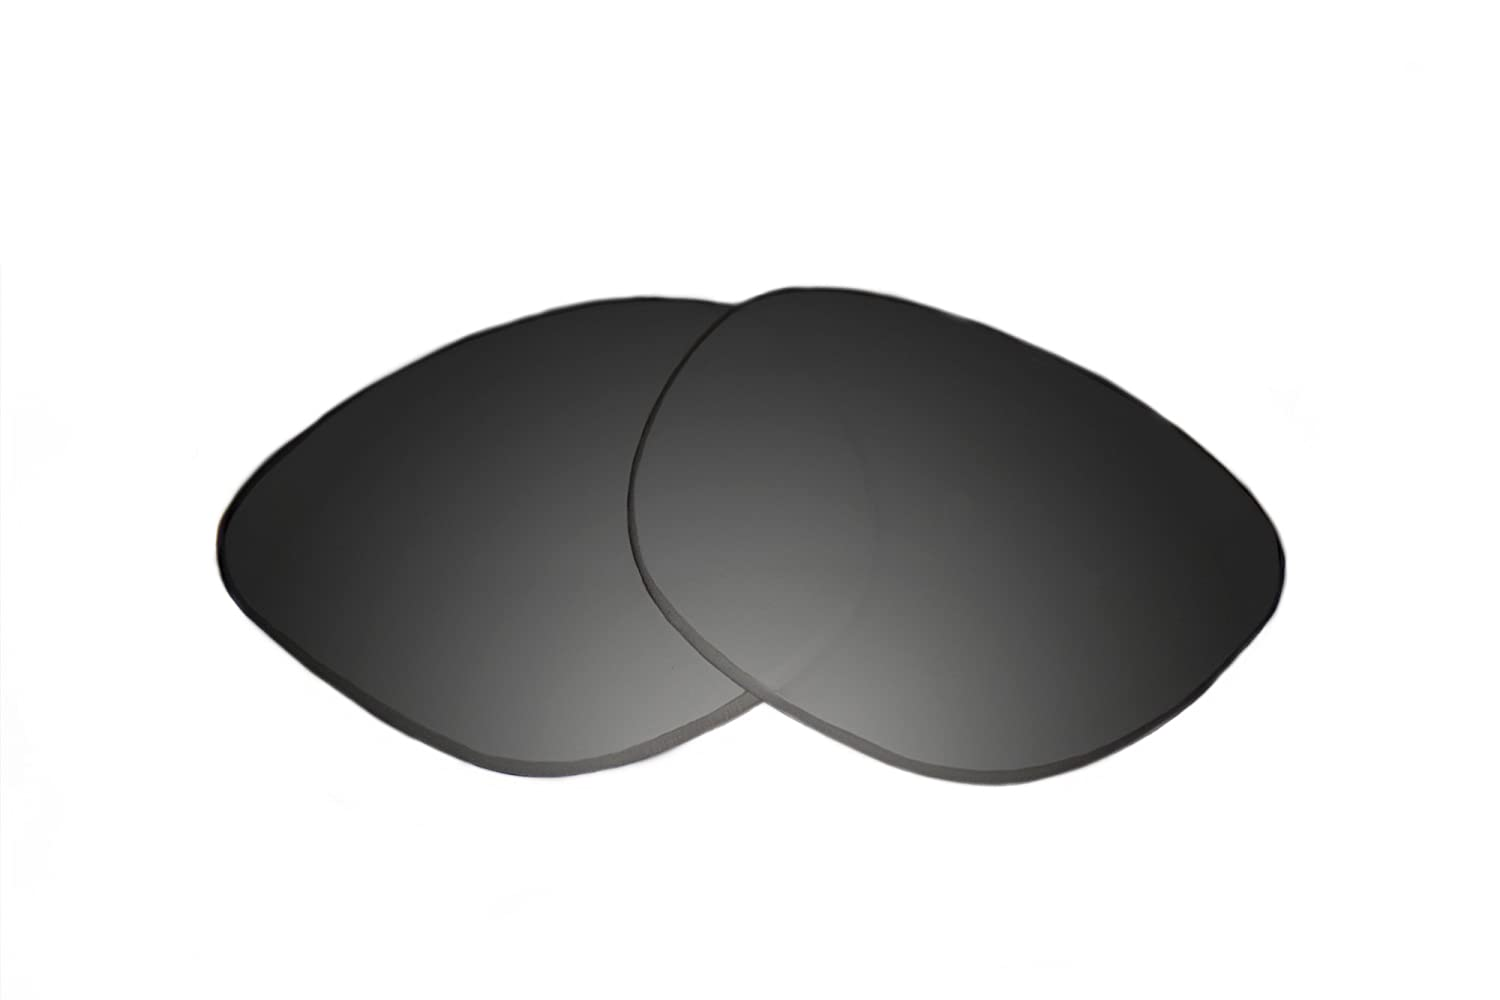 SFX Replacement Sunglass Lenses fits Otis Paradisco 57mm Wide x 45mm Tall